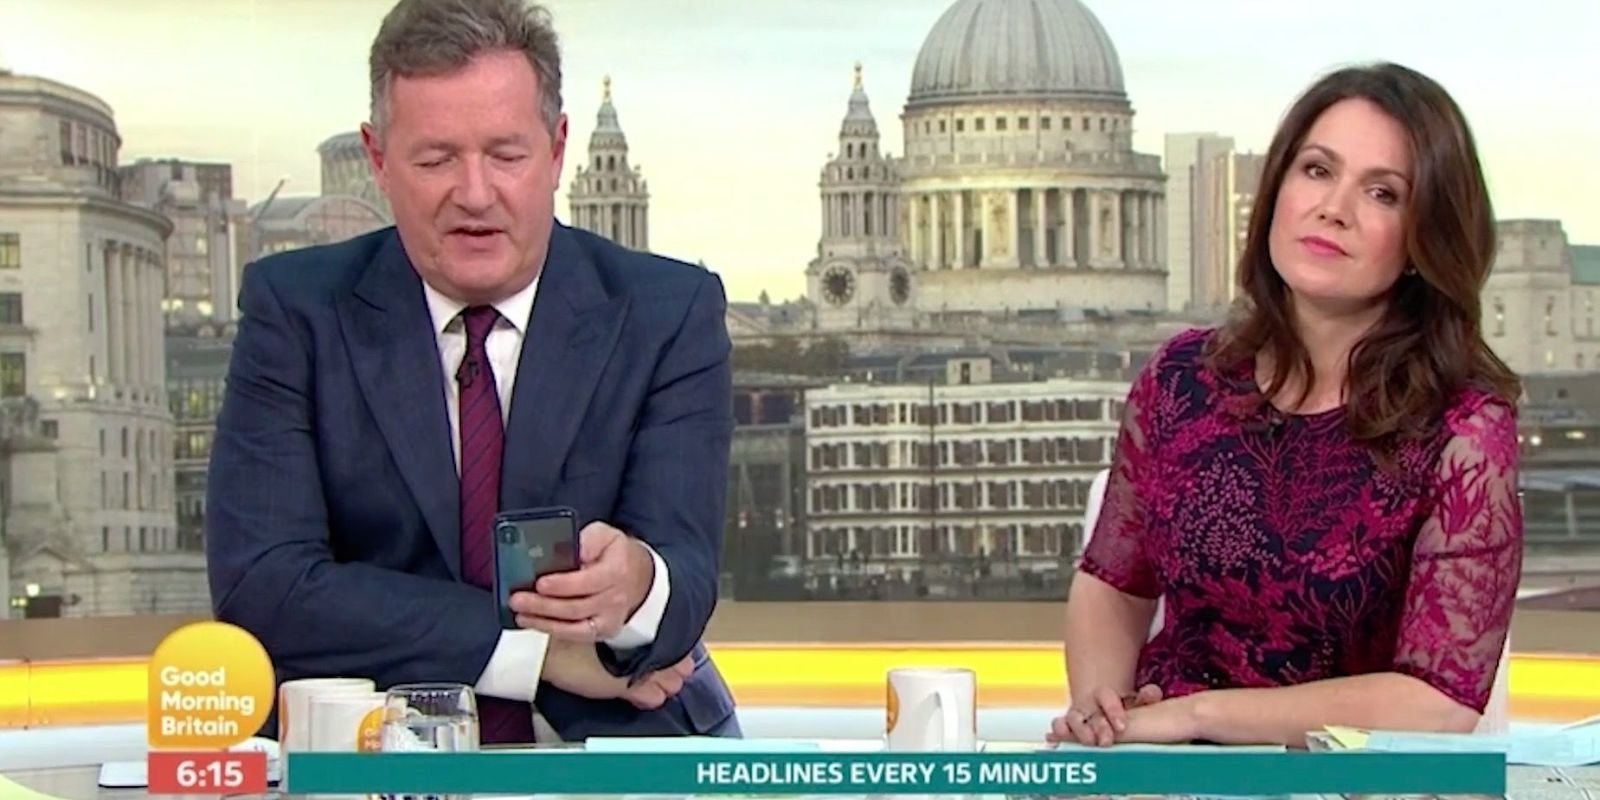 Good Morning Britain viewers slam Piers Morgan after he interrupts Manchester attack report to talk about Instagram